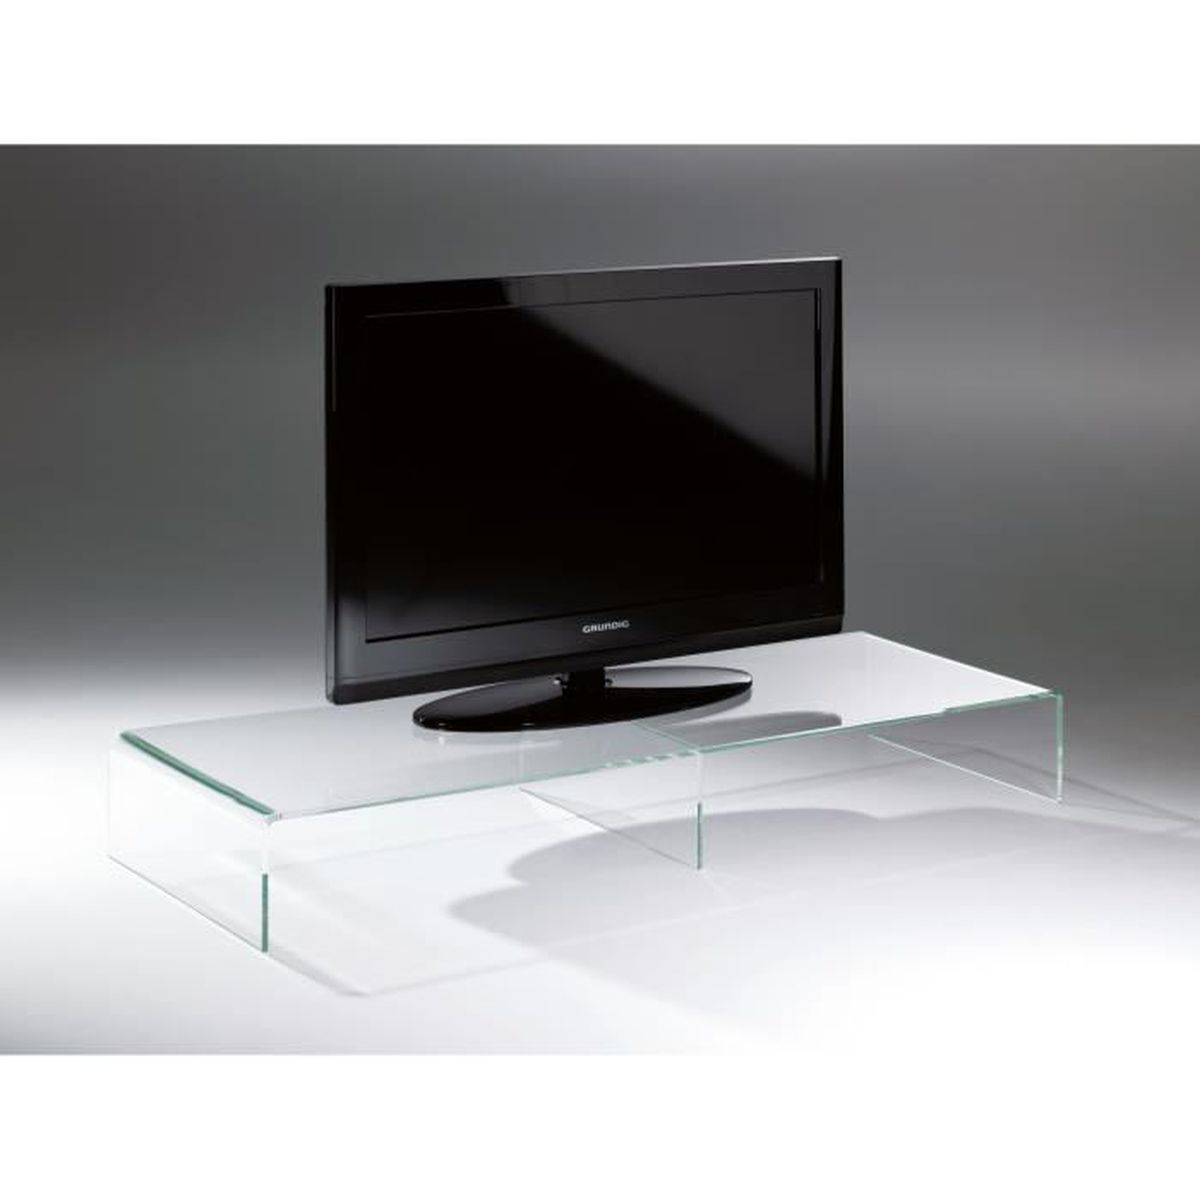 meuble tv h 80 cm achat vente meuble tv h 80 cm pas. Black Bedroom Furniture Sets. Home Design Ideas